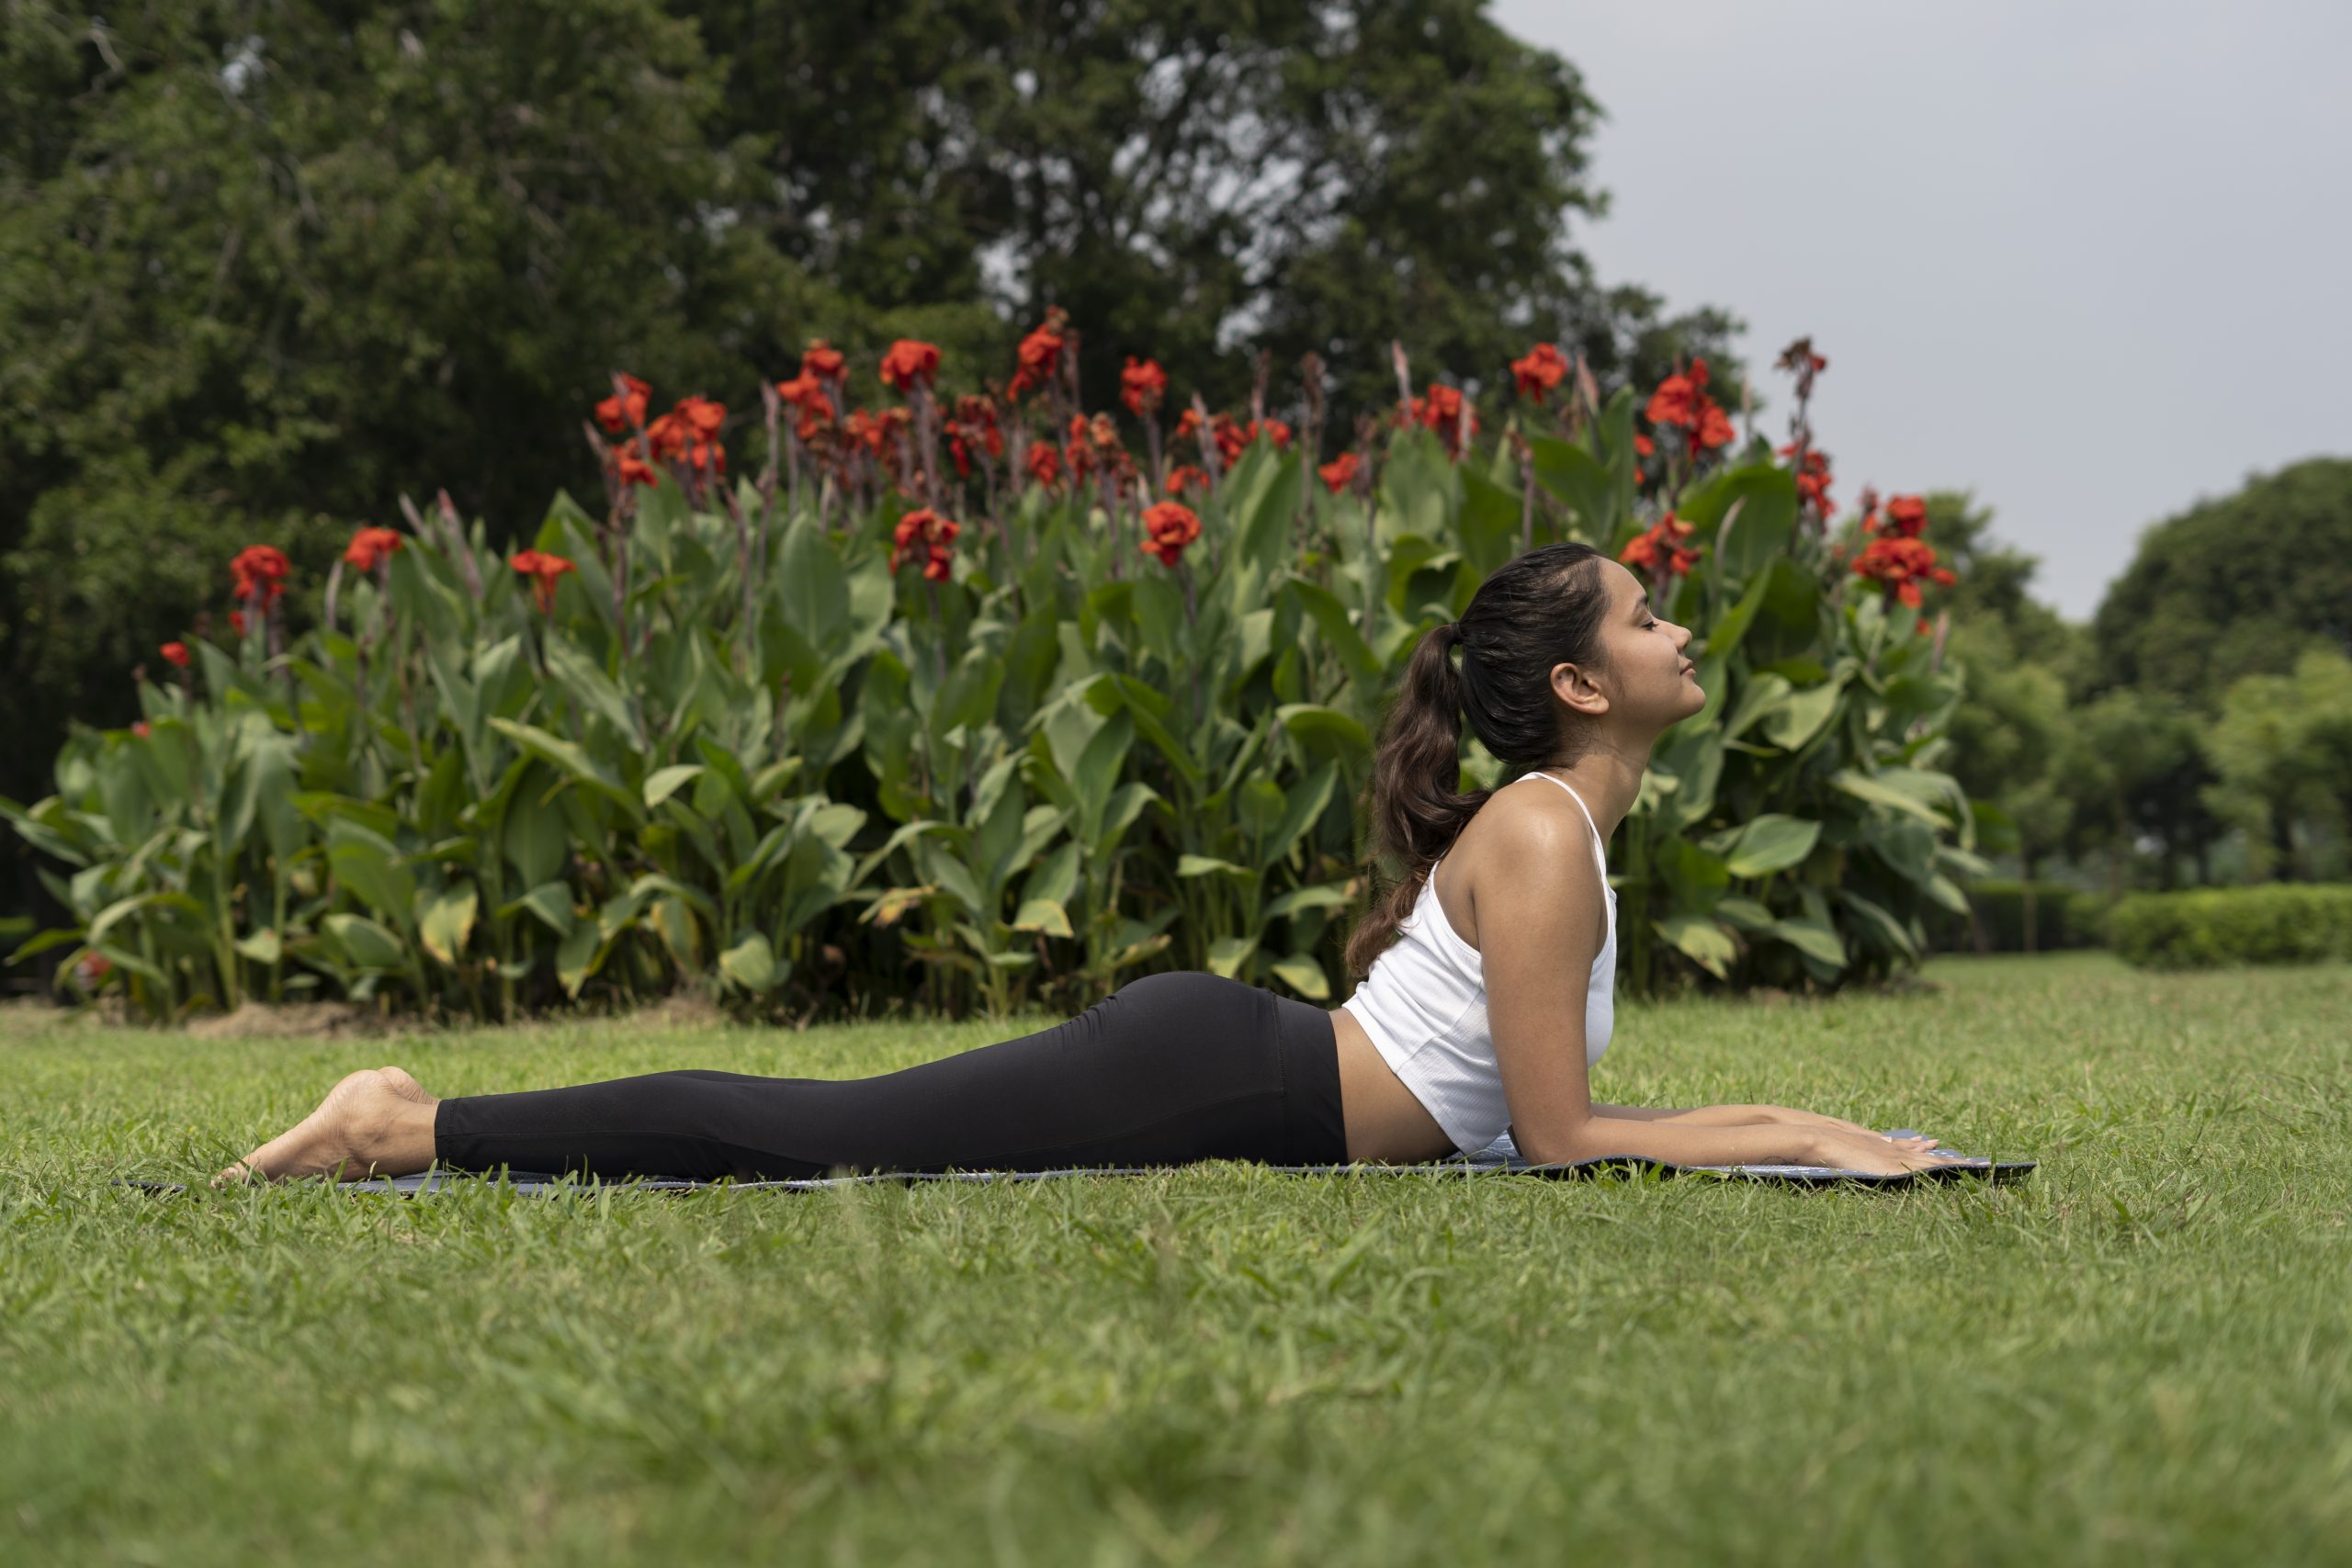 A girl working out in the garden